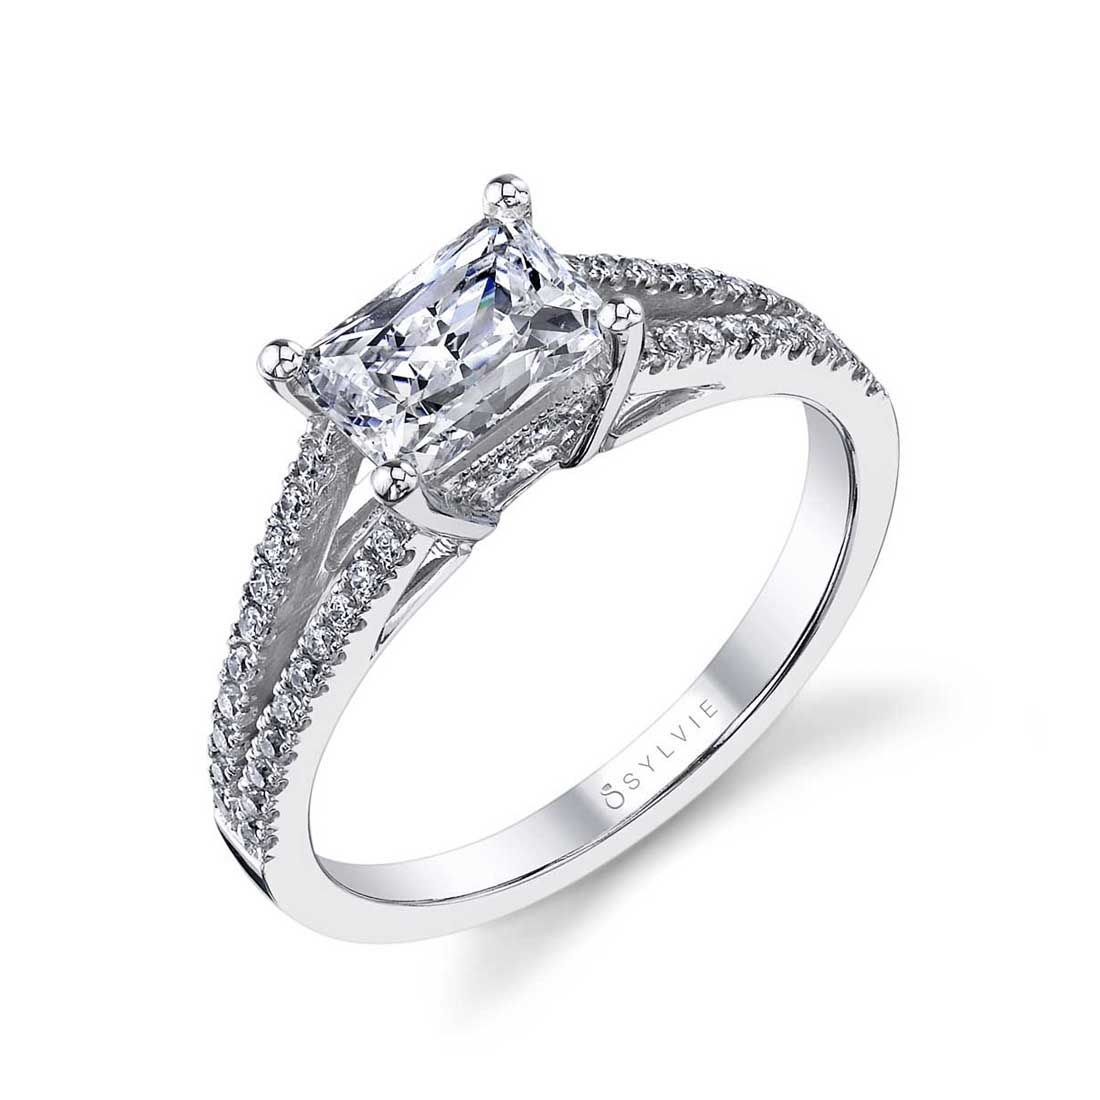 Monique - East West Emerald Engagement Ring with Split Shank